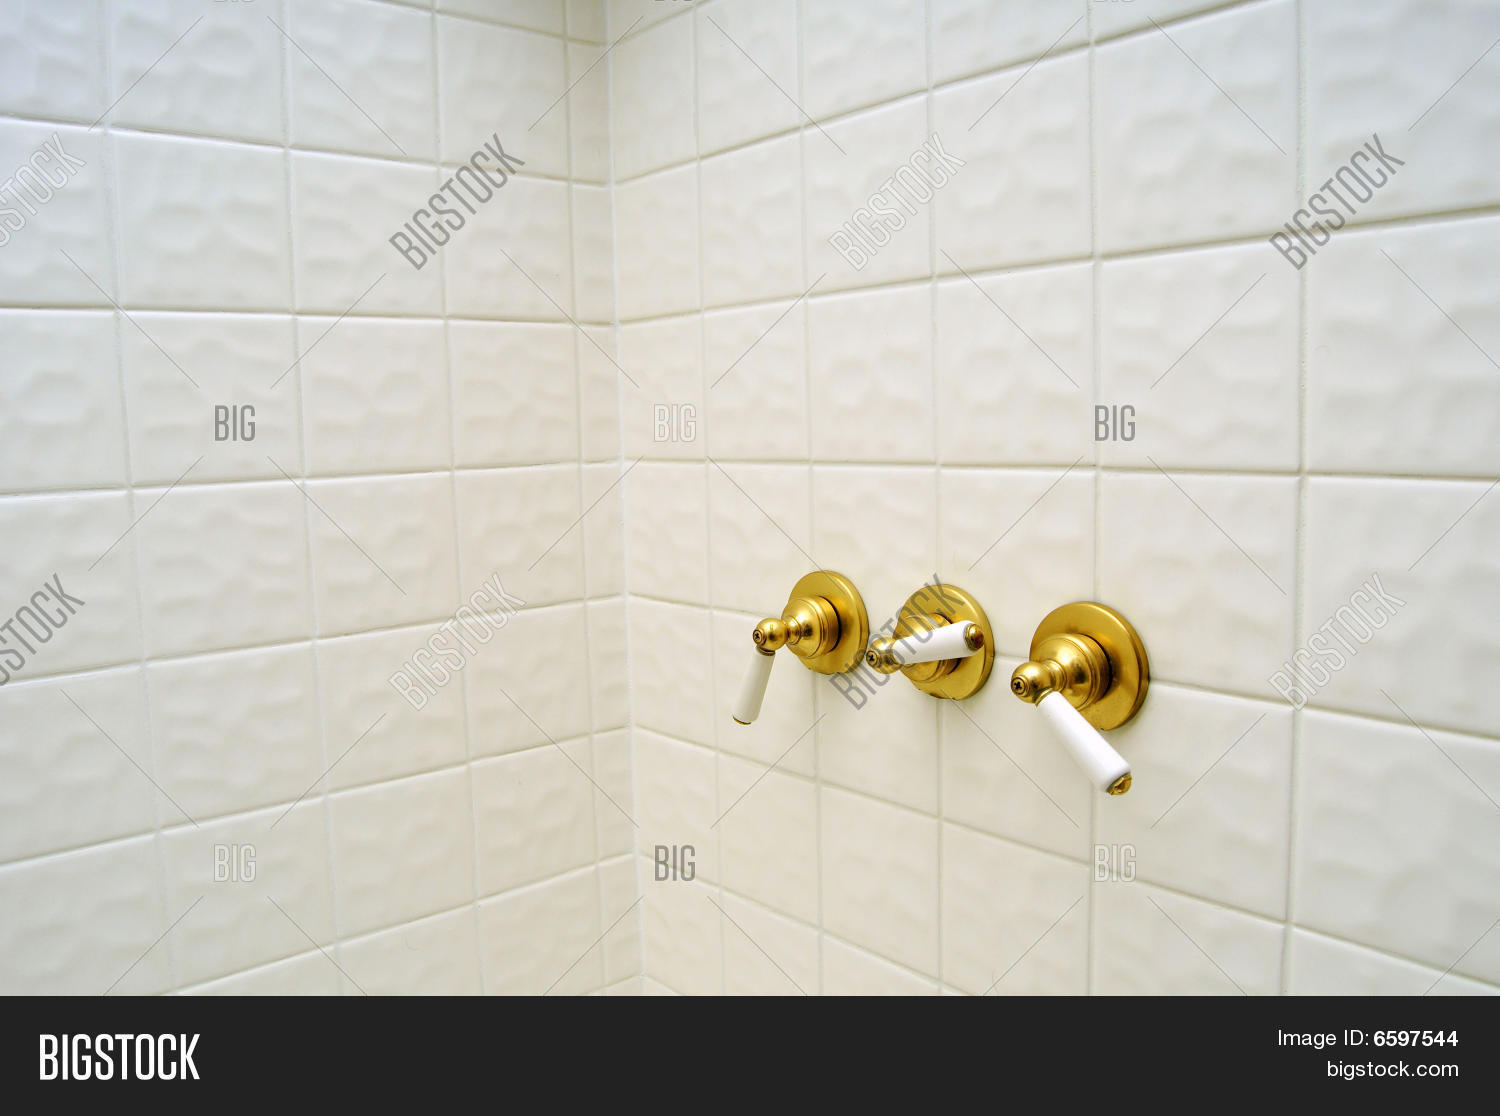 Free golden shower out side speaking, try look